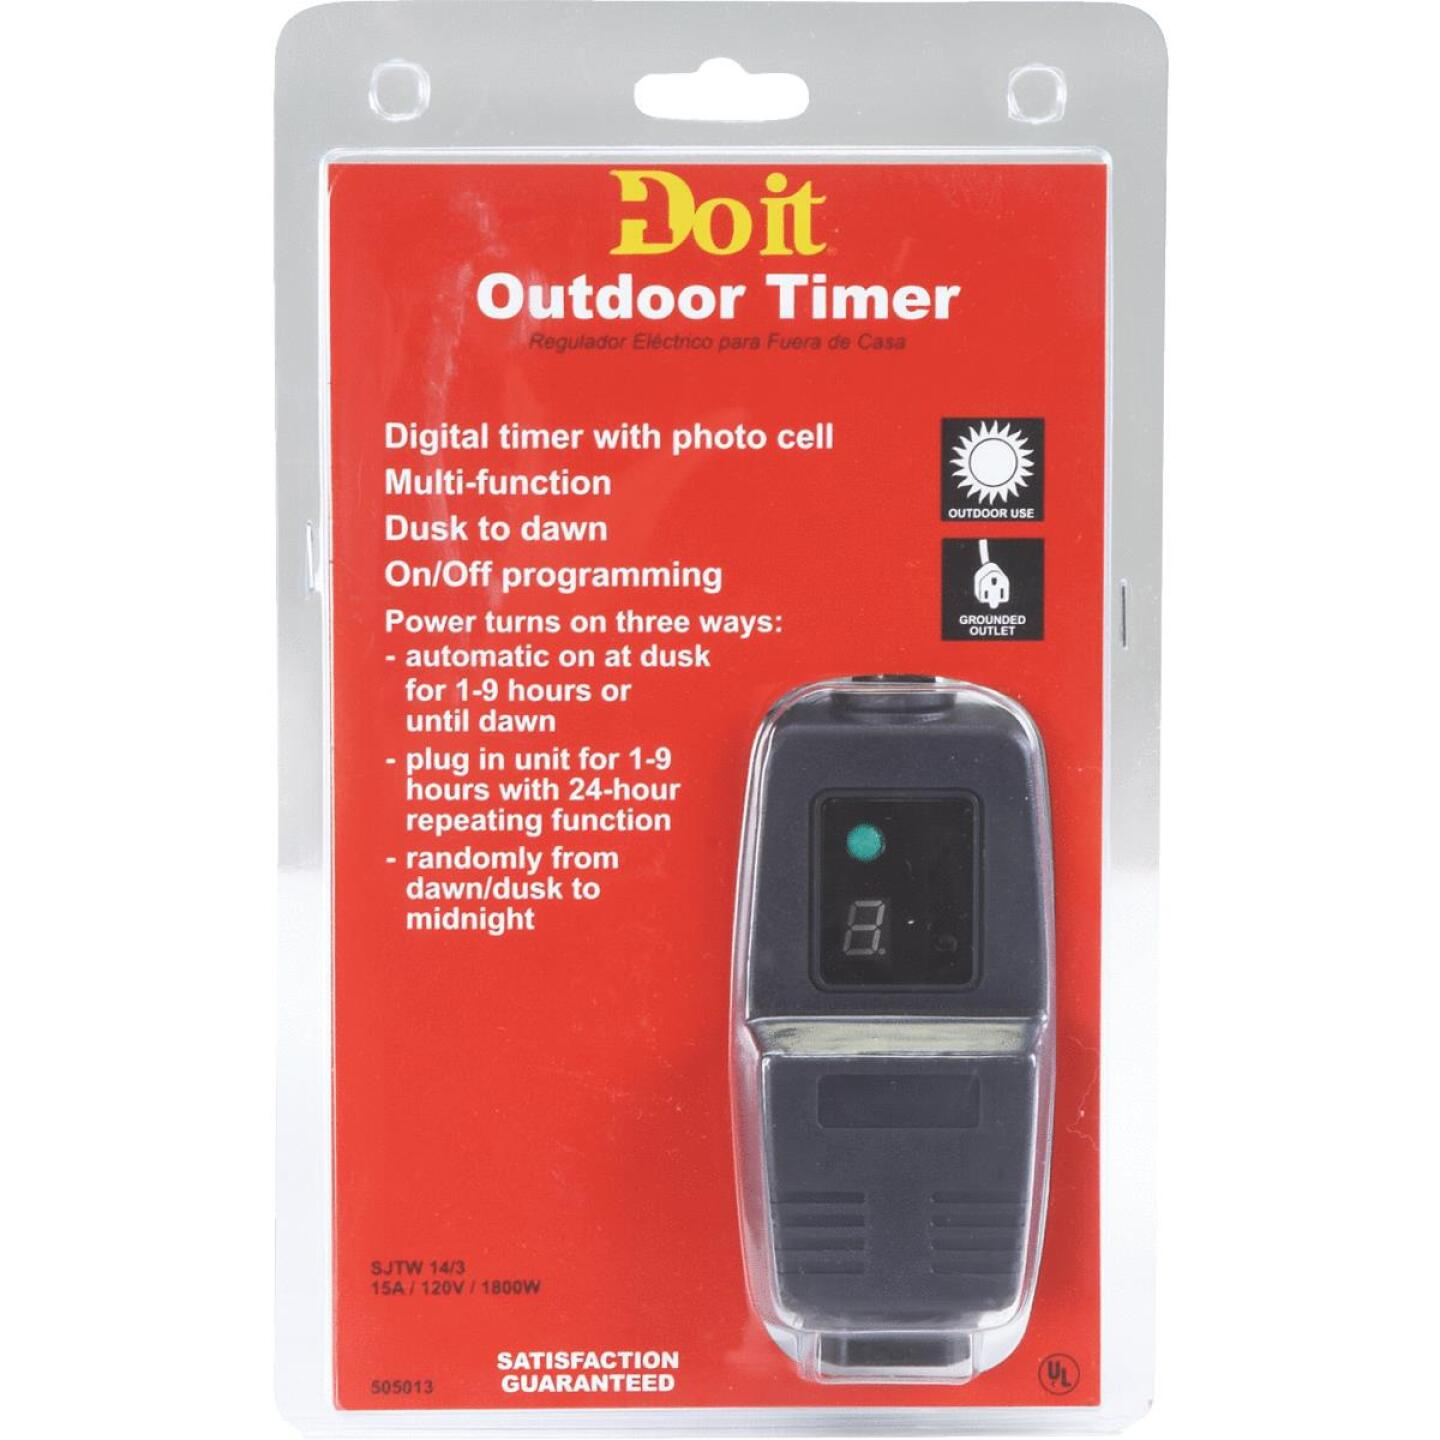 Do it 15A 120V 1800W Black Outdoor Timer Image 2